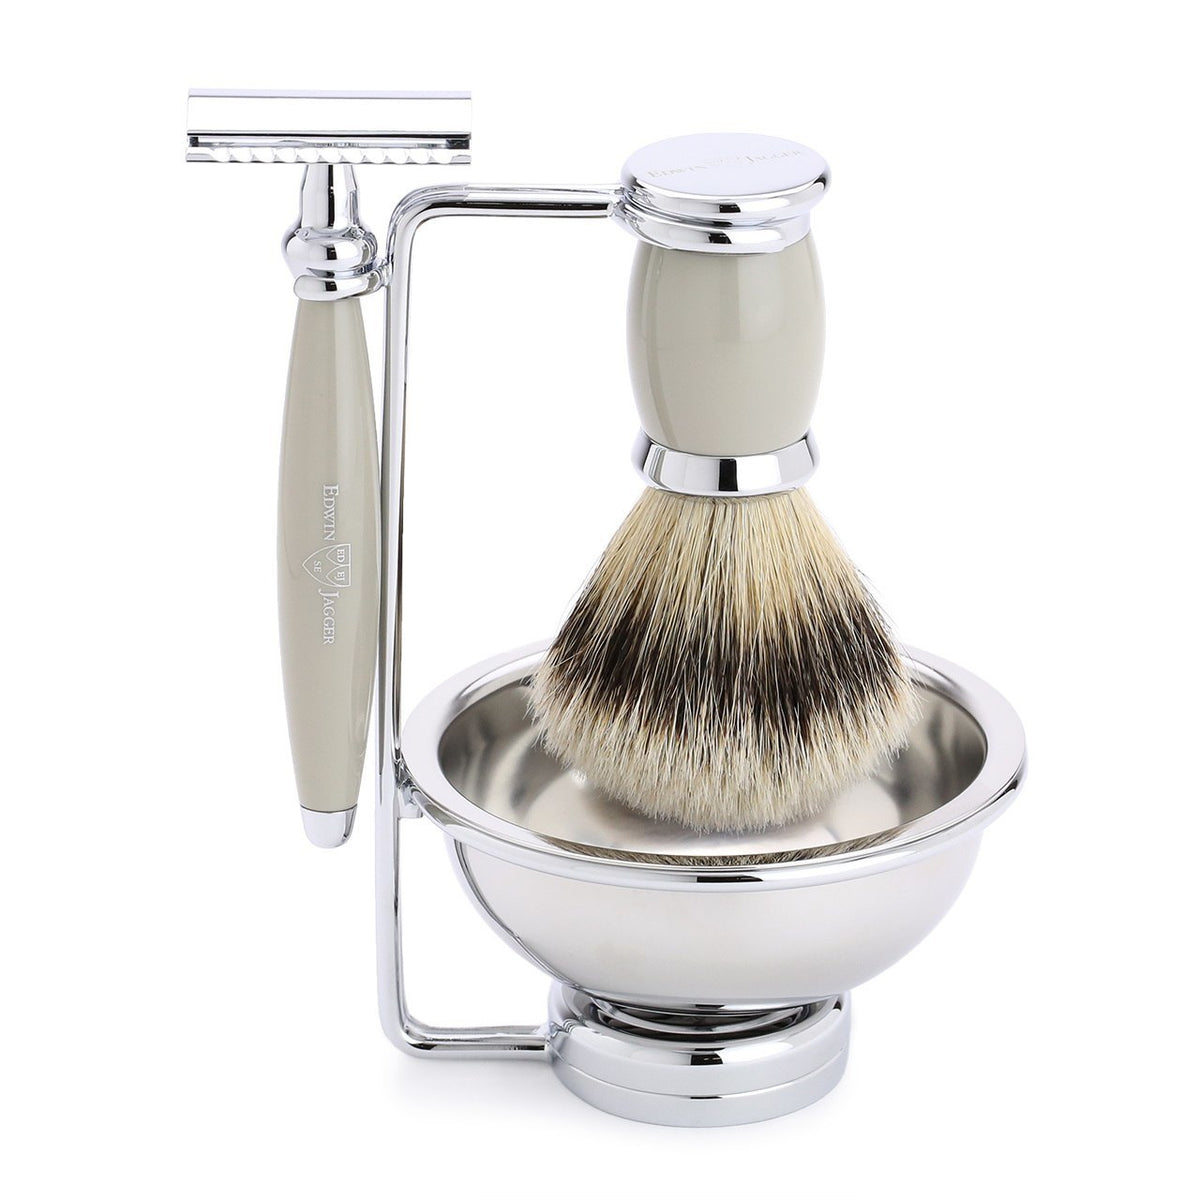 Edwin Jagger Bulbous 4 Piece Chrome Plated Shaving Set - Grey